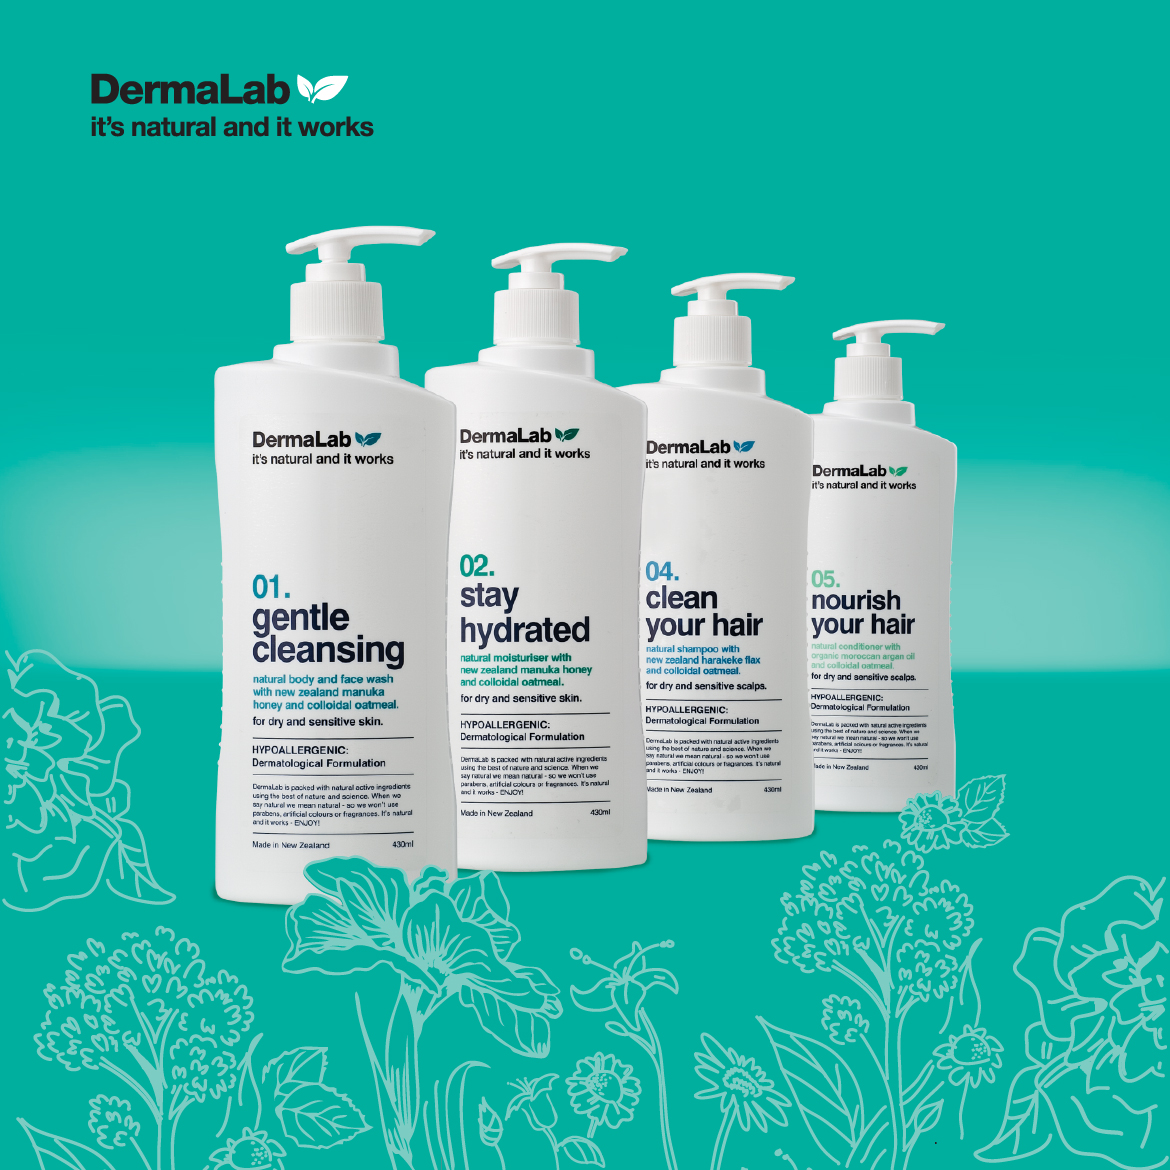 redfire-design-Dermalab-Product-Range-Green